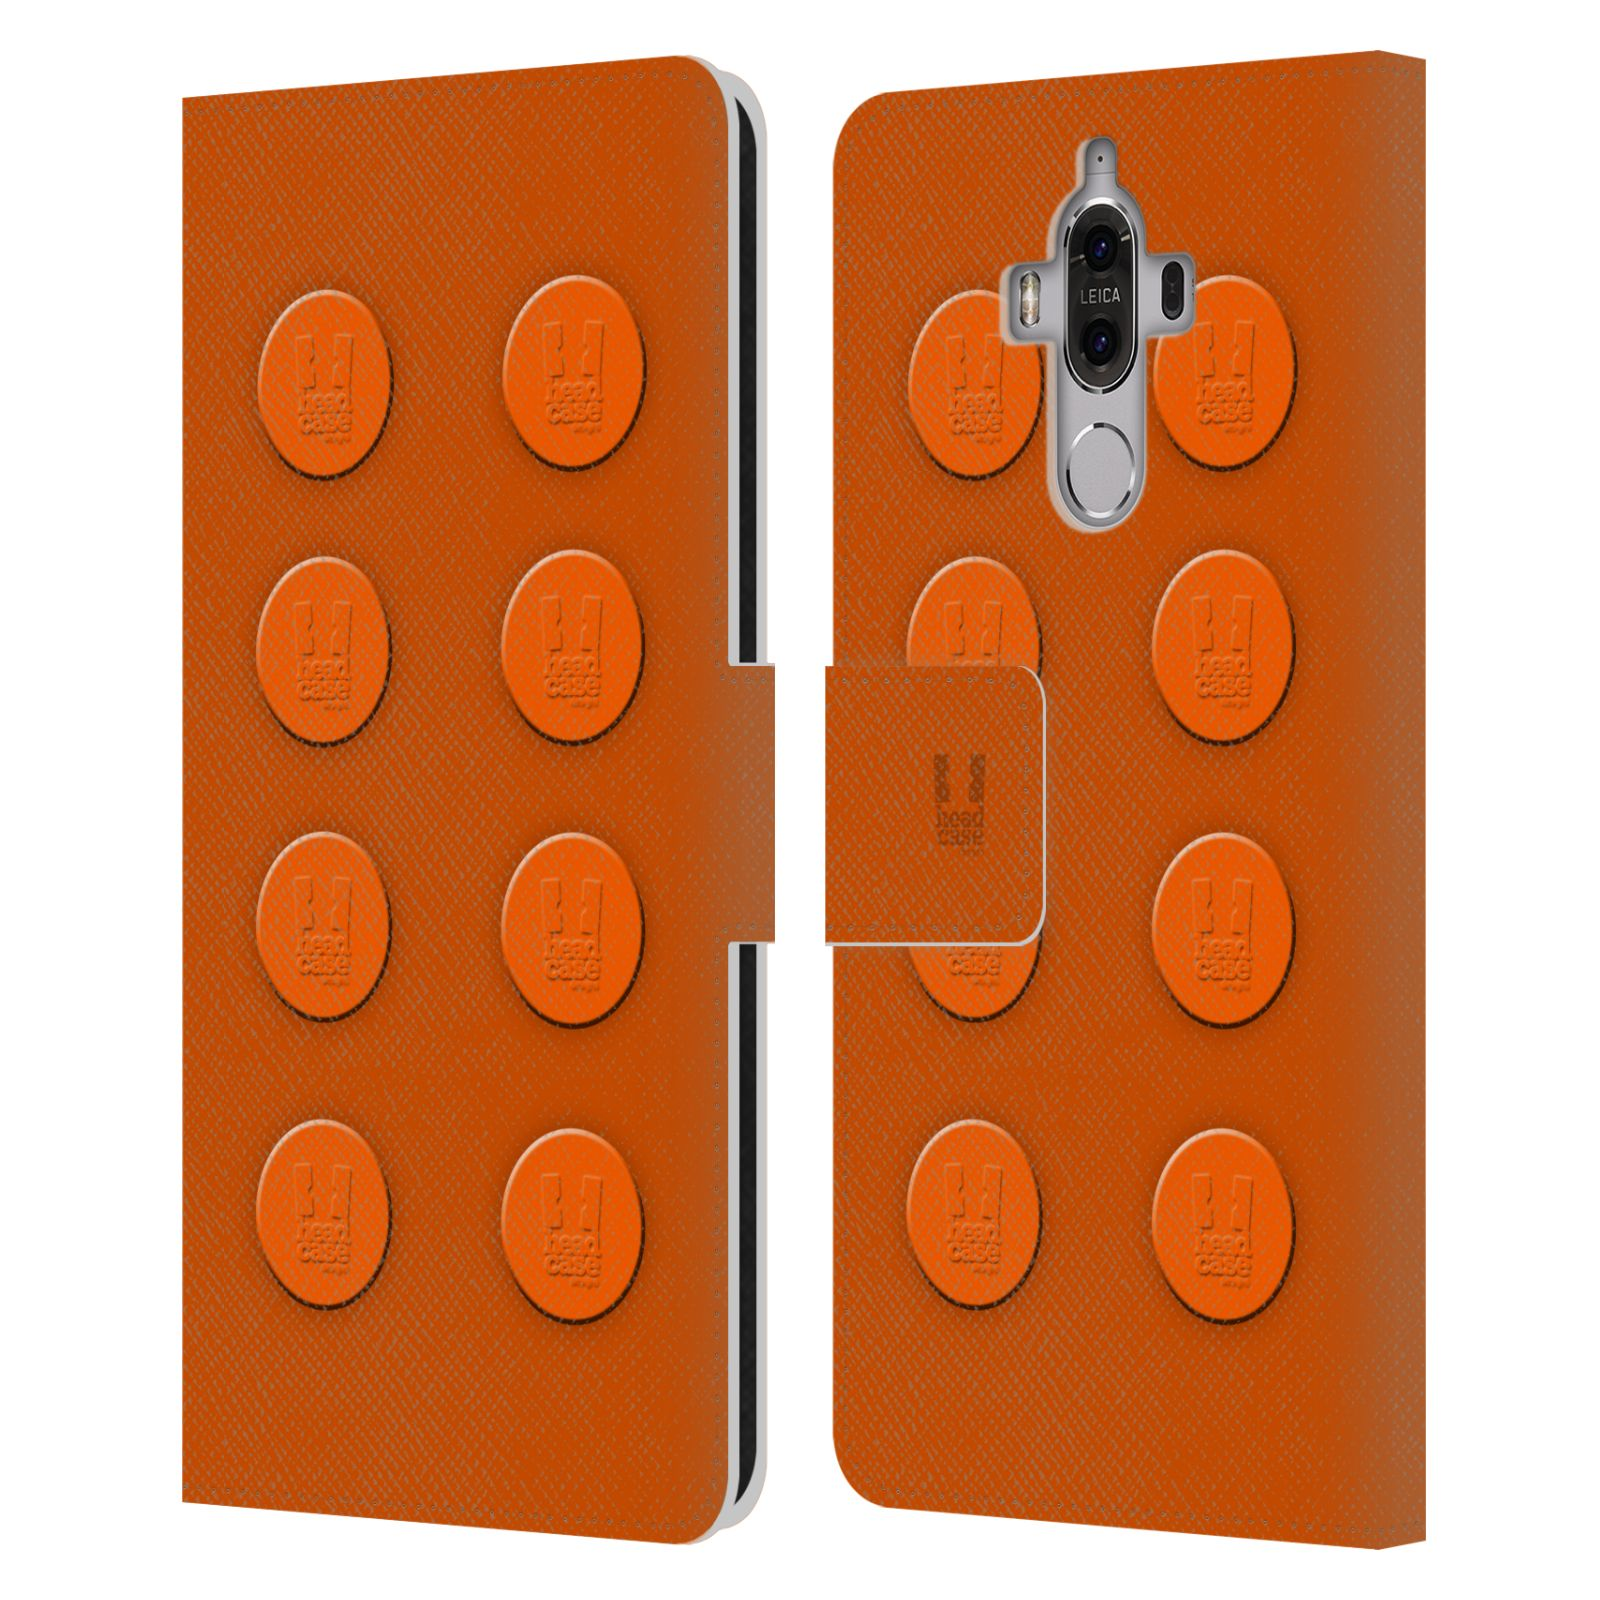 HEAD-CASE-DESIGNS-BUILDING-BLOCKS-LEATHER-BOOK-WALLET-CASE-FOR-HUAWEI-MATE-9